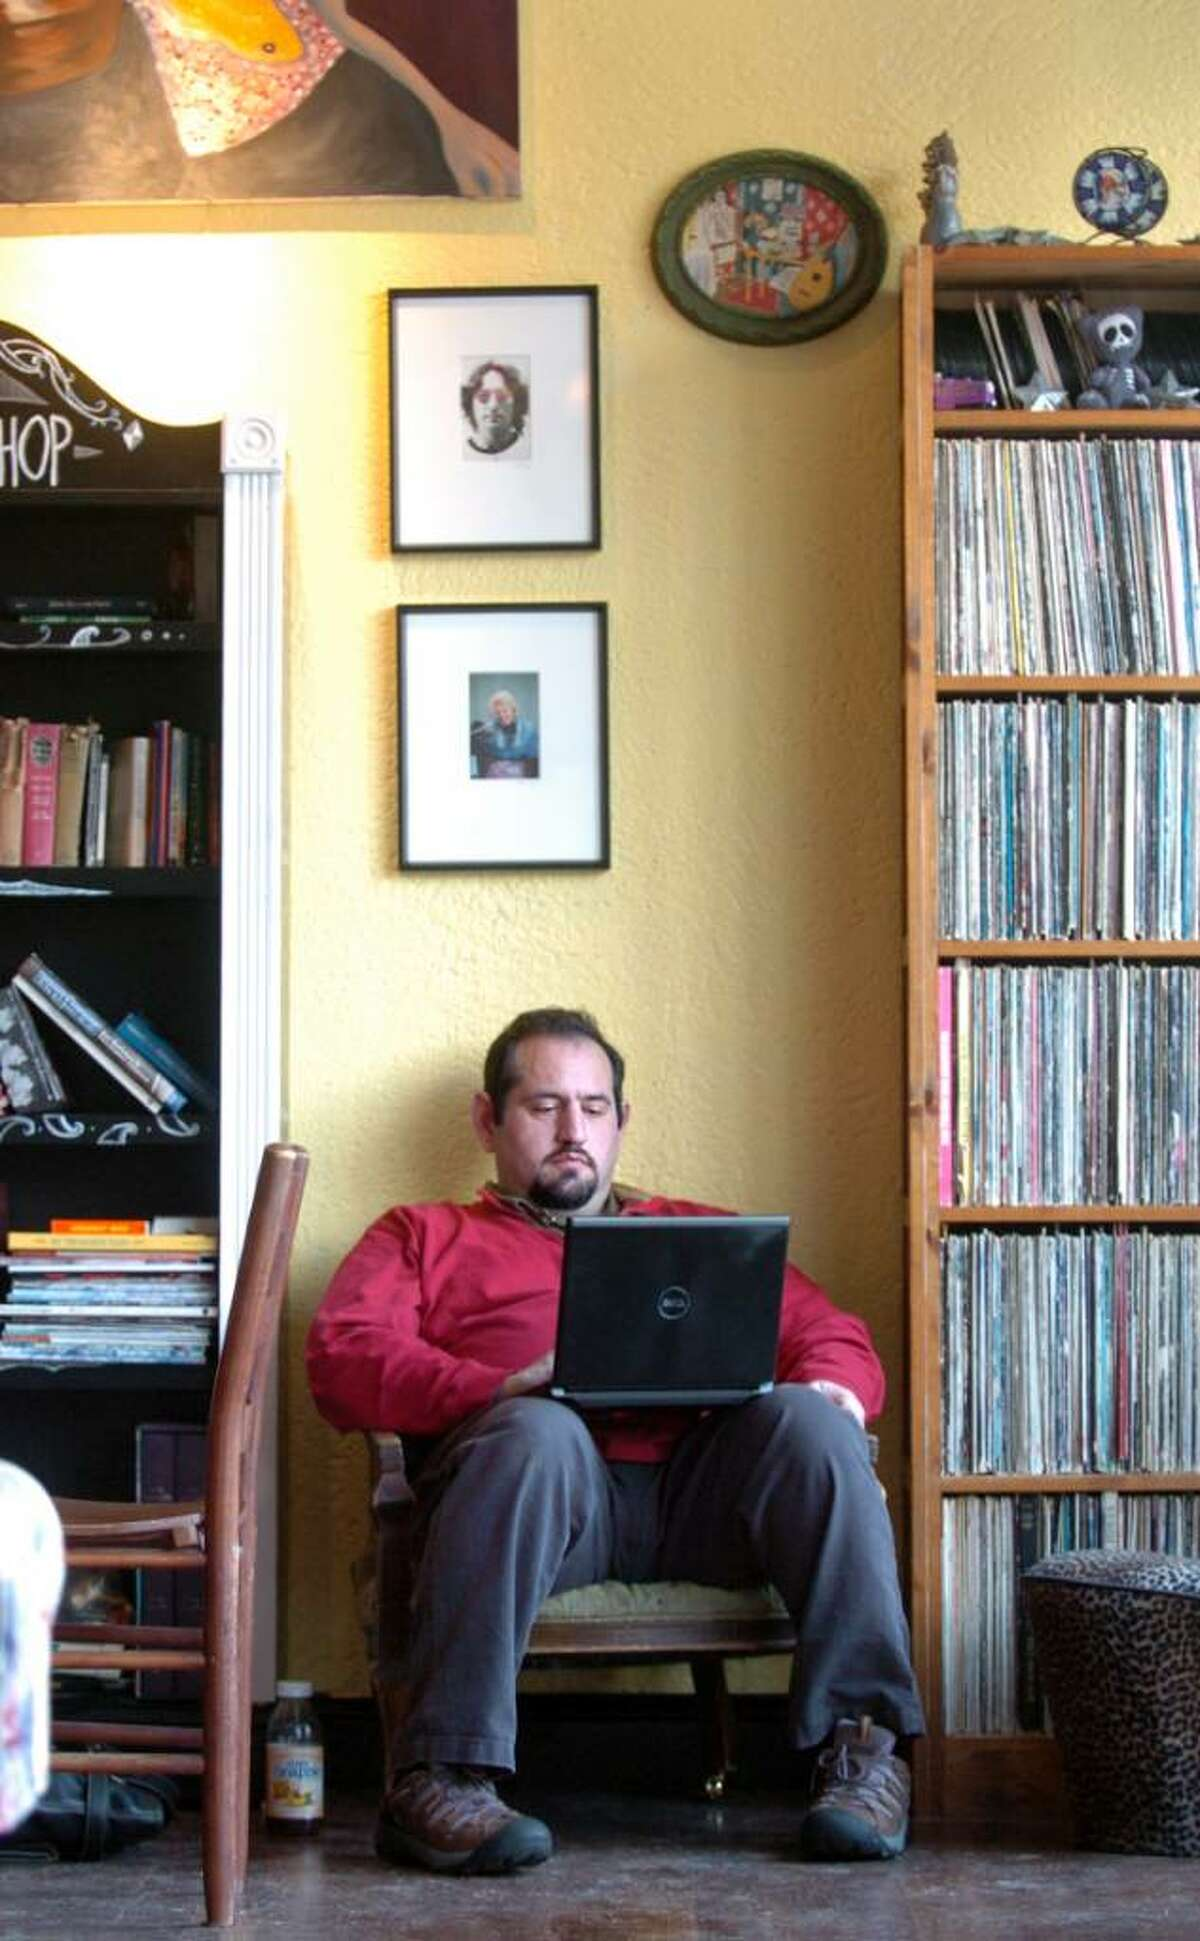 Peter Temes, of Fairfield, gets some work done Thursday Feb. 18, 2010 at Las Vetas Lounge now open at their new location on Unquowa Road in Fairfield.